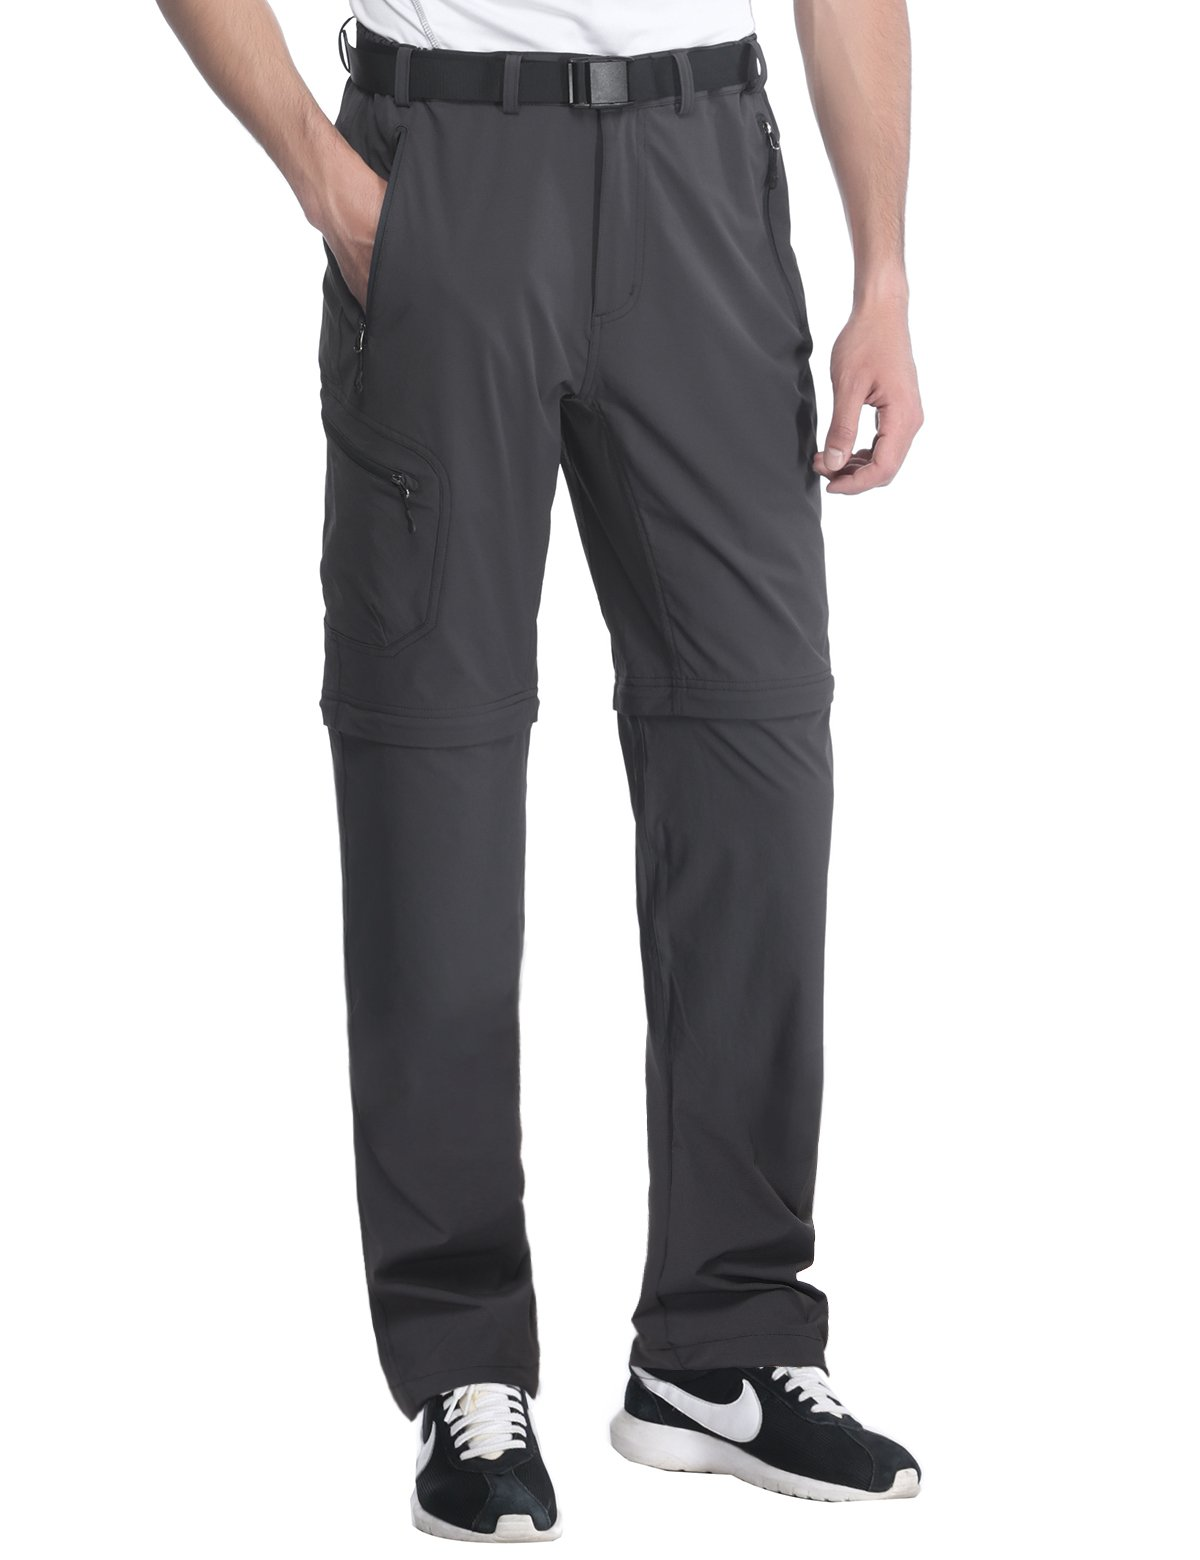 MIERSPORTS Men's Outdoor Cargo Pants Quick Dry Convertible Pants for Travel Hiking Climbing, Water Resistant, 5 Pockets, Graphite Gray, L